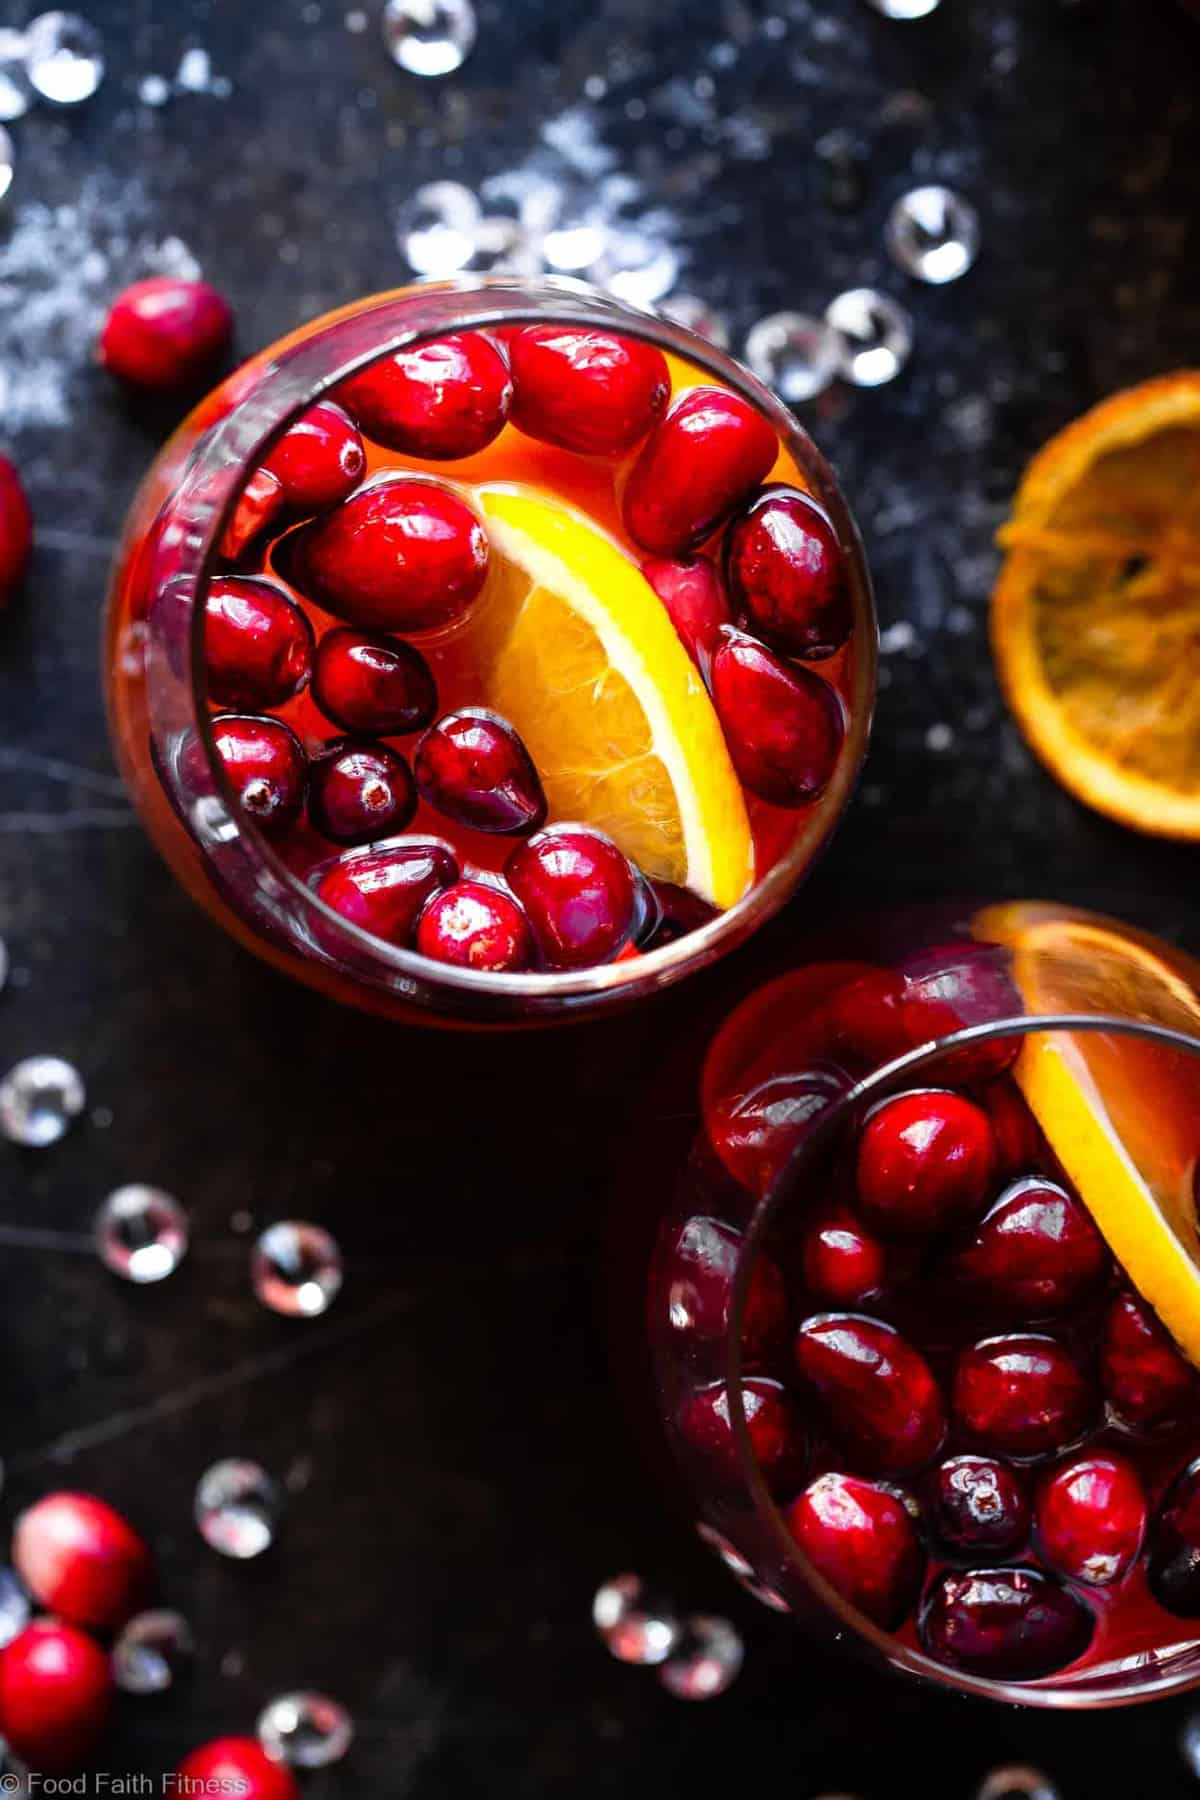 Sparkling Red Sangria - Full of tart cranberries and sweet oranges, this champagne sangria recipe is an easy, better-for-you cocktail that is perfect to serve a crowd this Holiday season! Fizzy, festive and tasty! | #Foodfaithfitness |